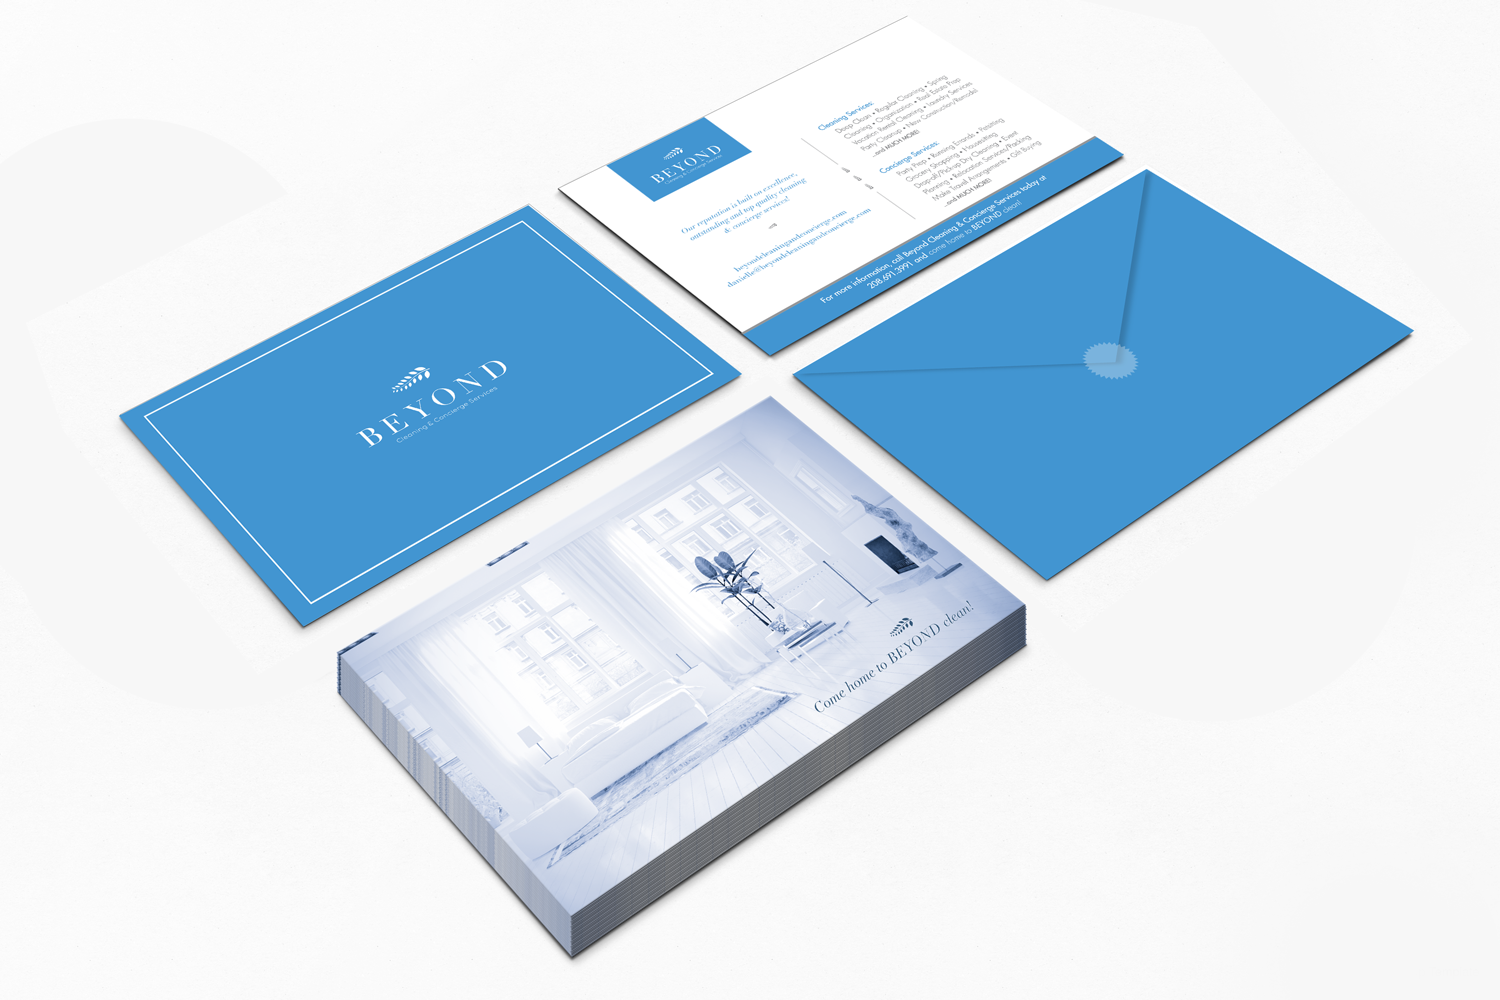 Beyond Cleaning Concierge Services Brand Identity Design Flyers Brand Identity Design Branding Logo Design